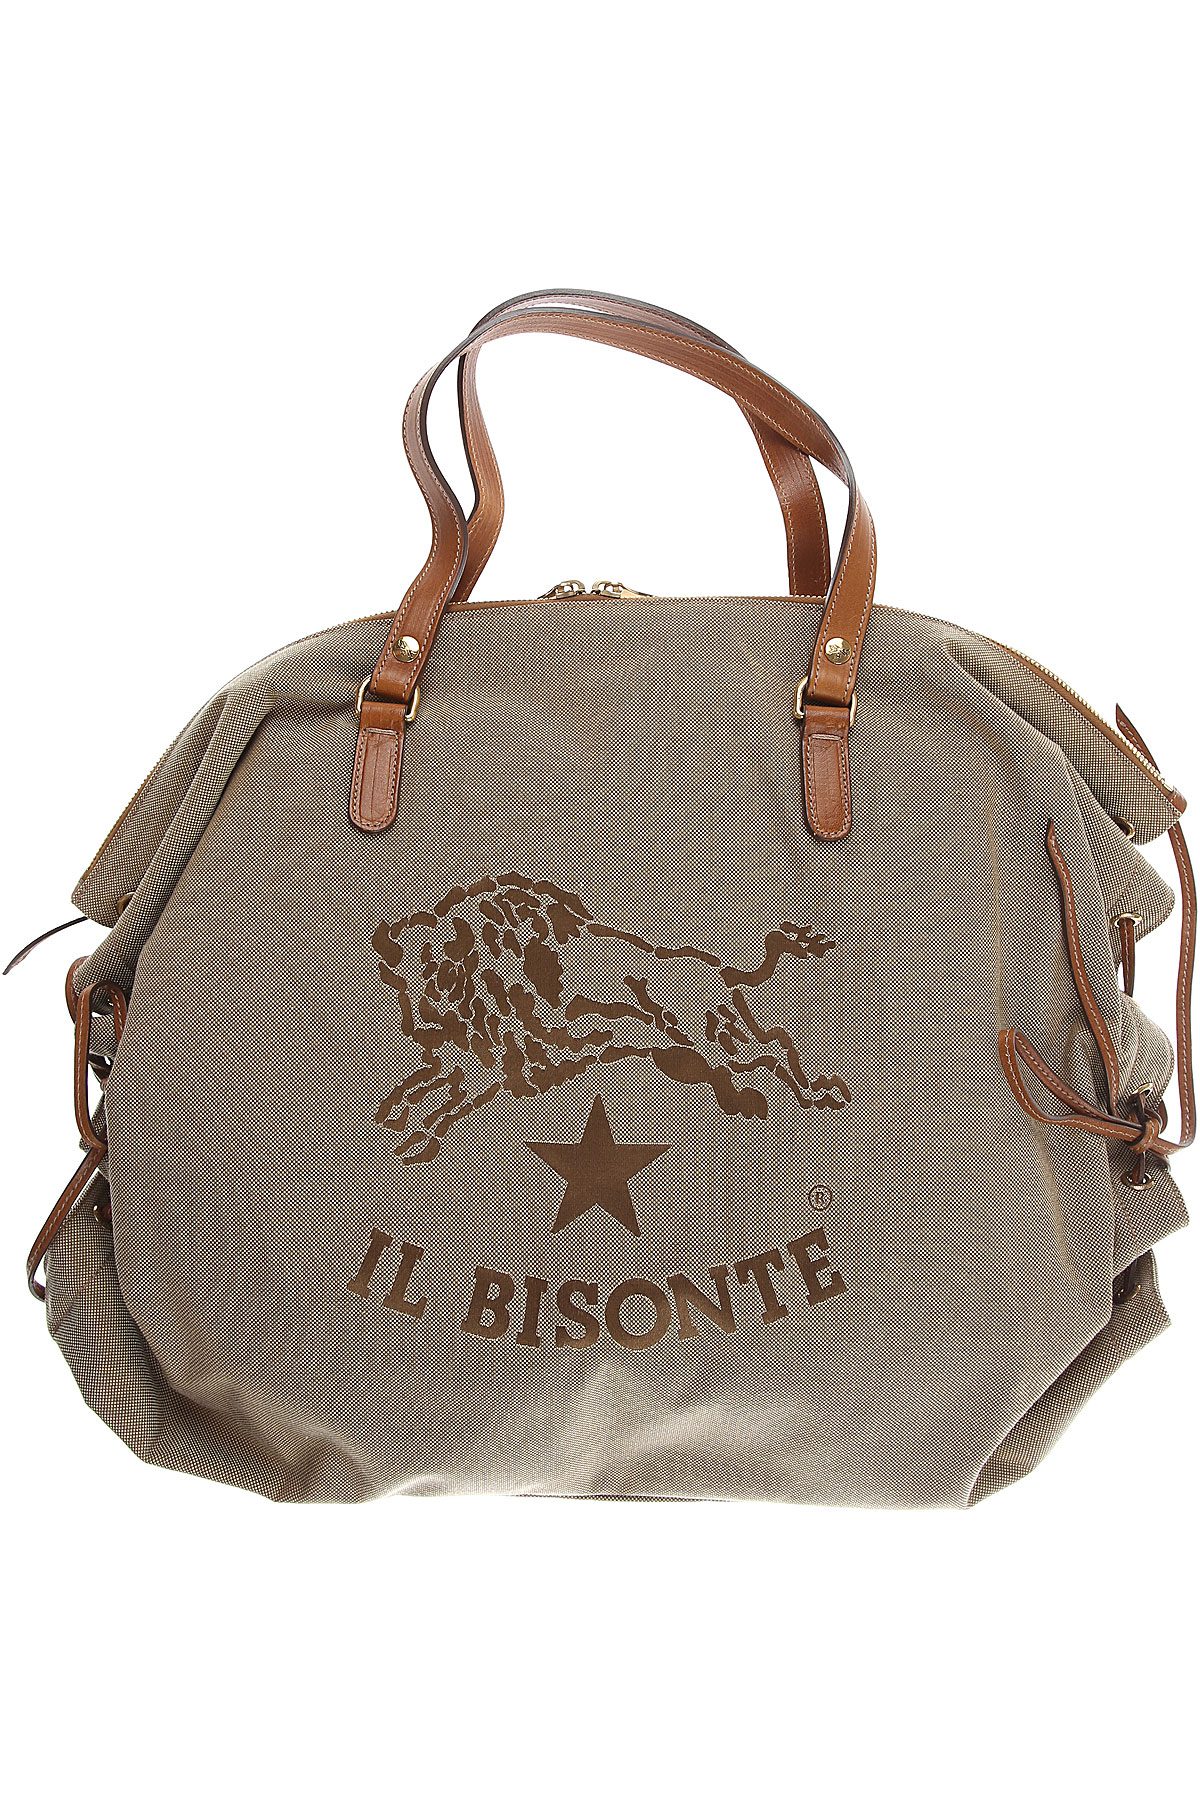 Il Bisonte Tote Bag On Sale, Olive, Fabric, 2019